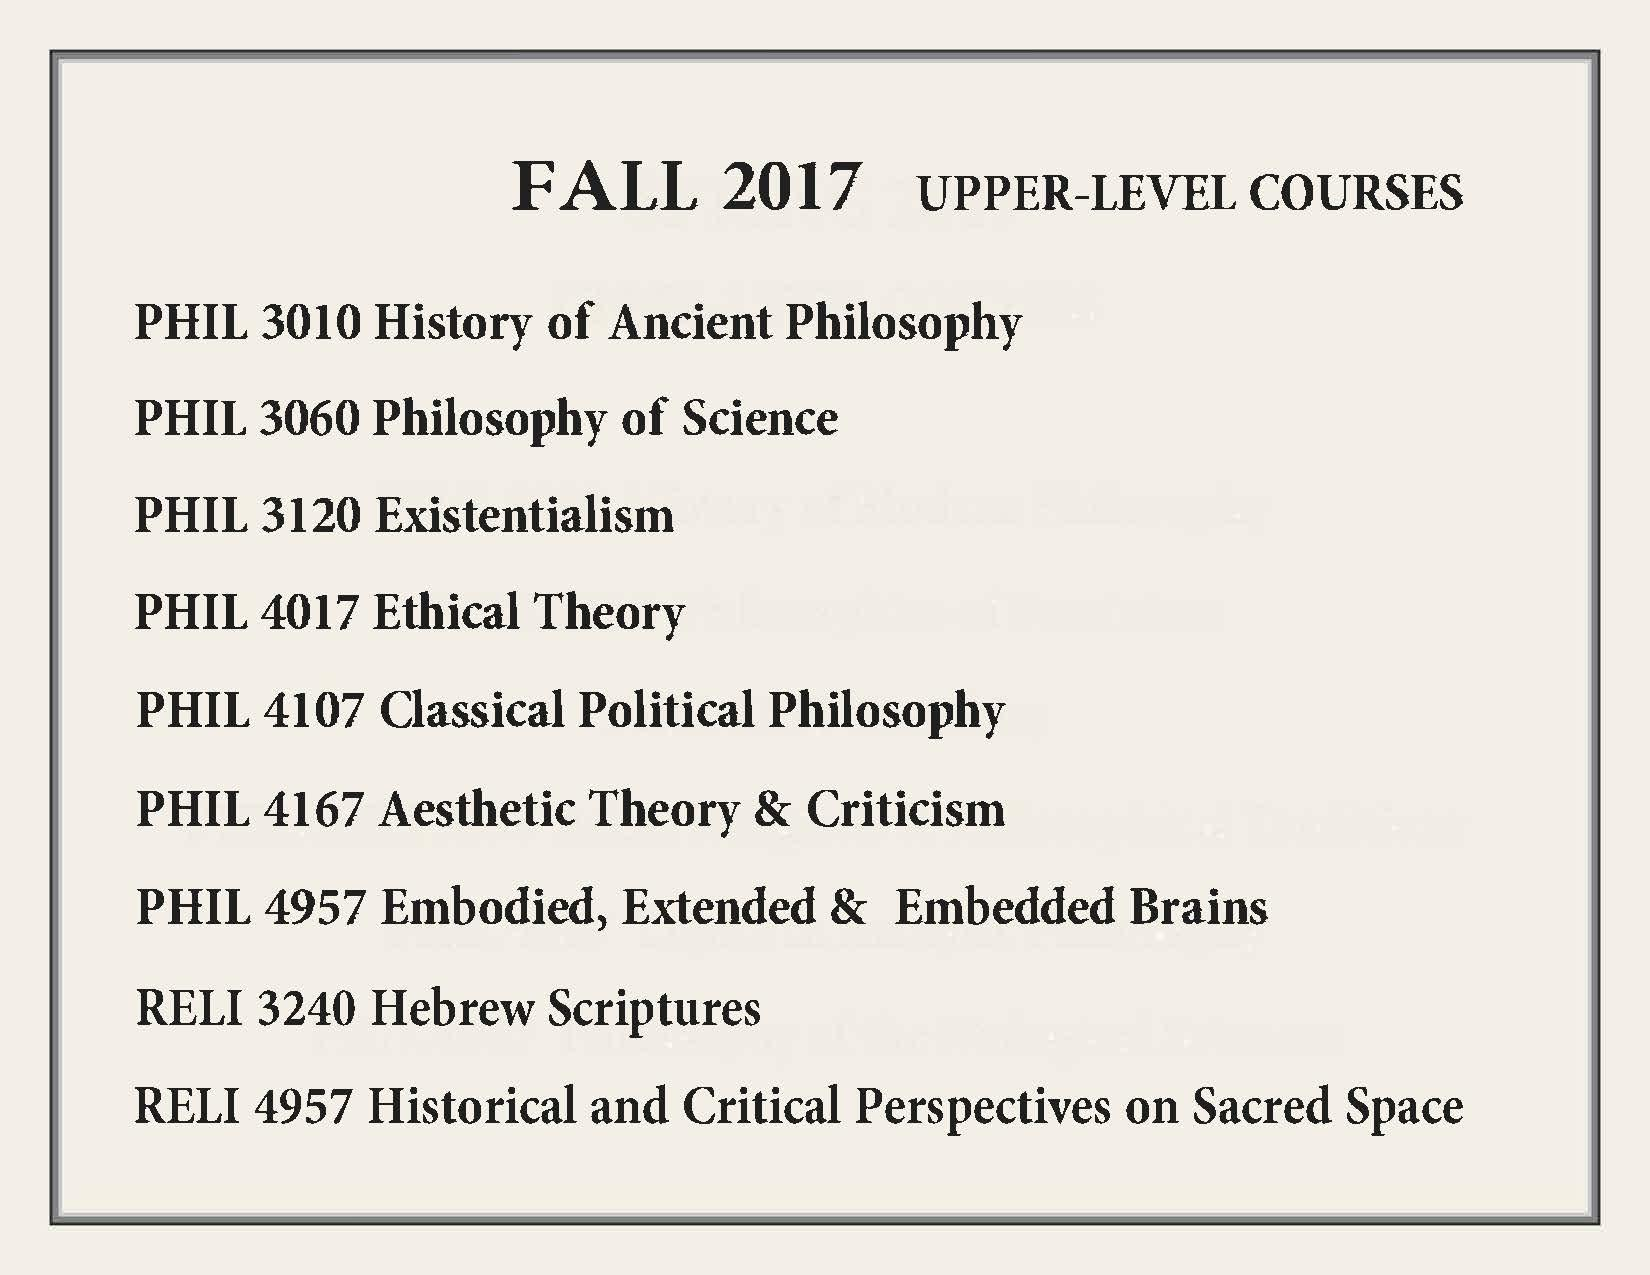 Fall 2017 upper-level courses